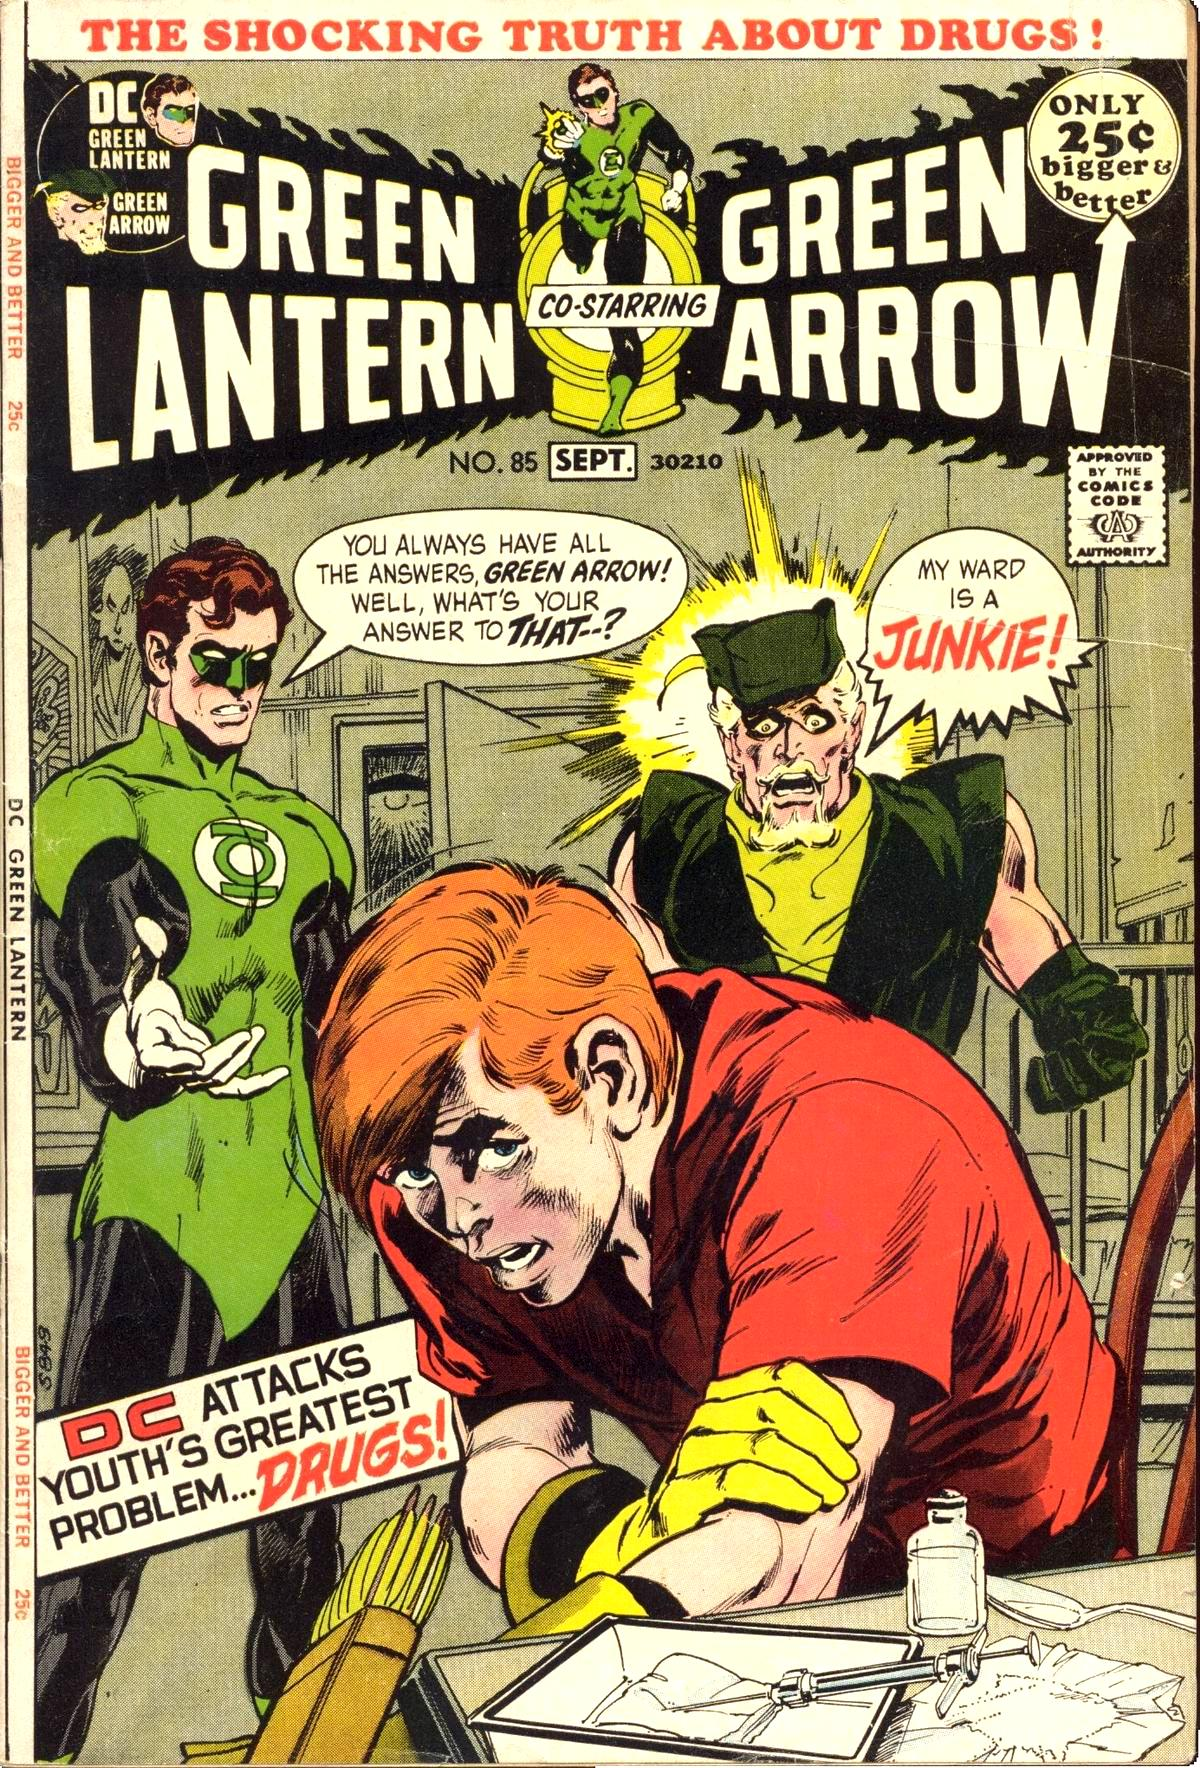 green_lantern_arrow_85